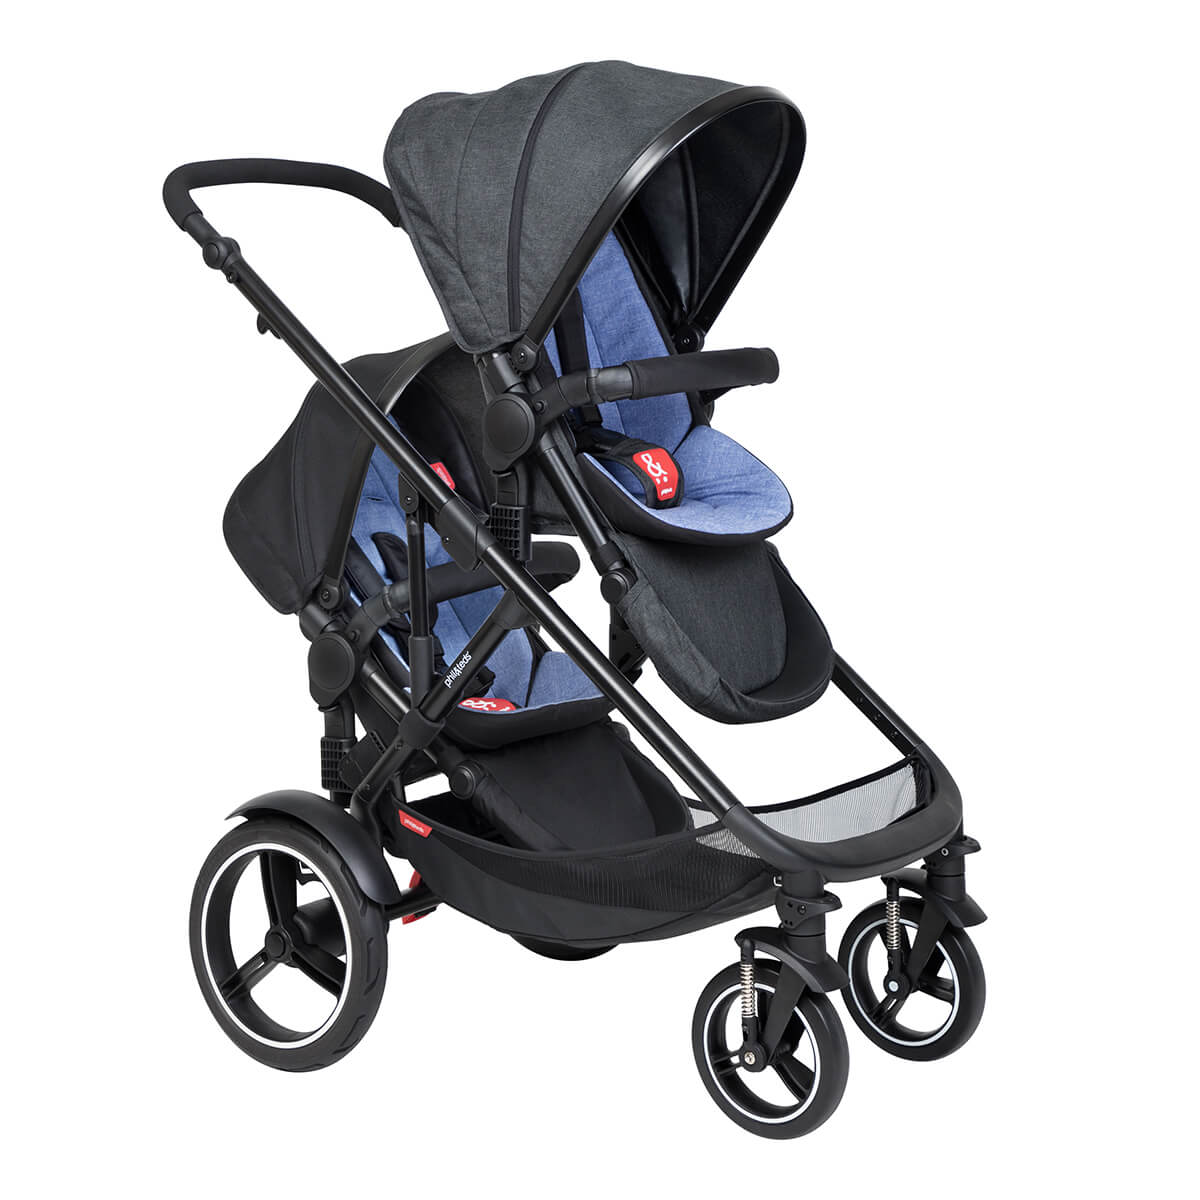 https://cdn.accentuate.io/4394653778008/19272668414040/philteds-voyager-inline-buggy-with-double-snug-carrycots-v1626484570736.jpg?1200x1200